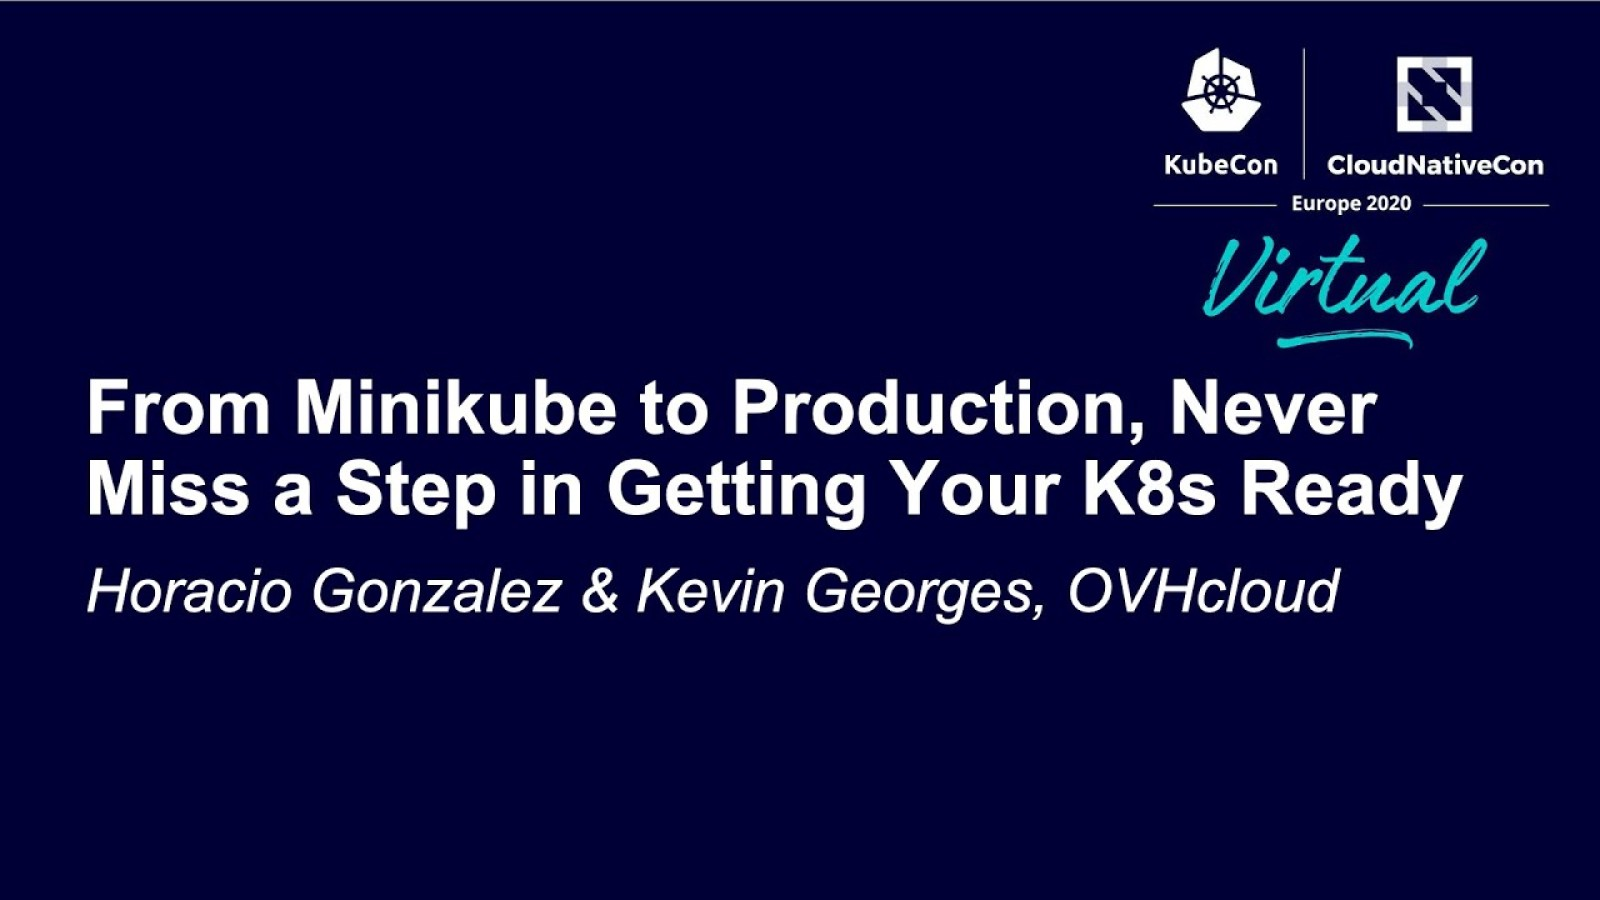 From Minikube to Production, Never Miss a Step in Getting Your K8s Ready